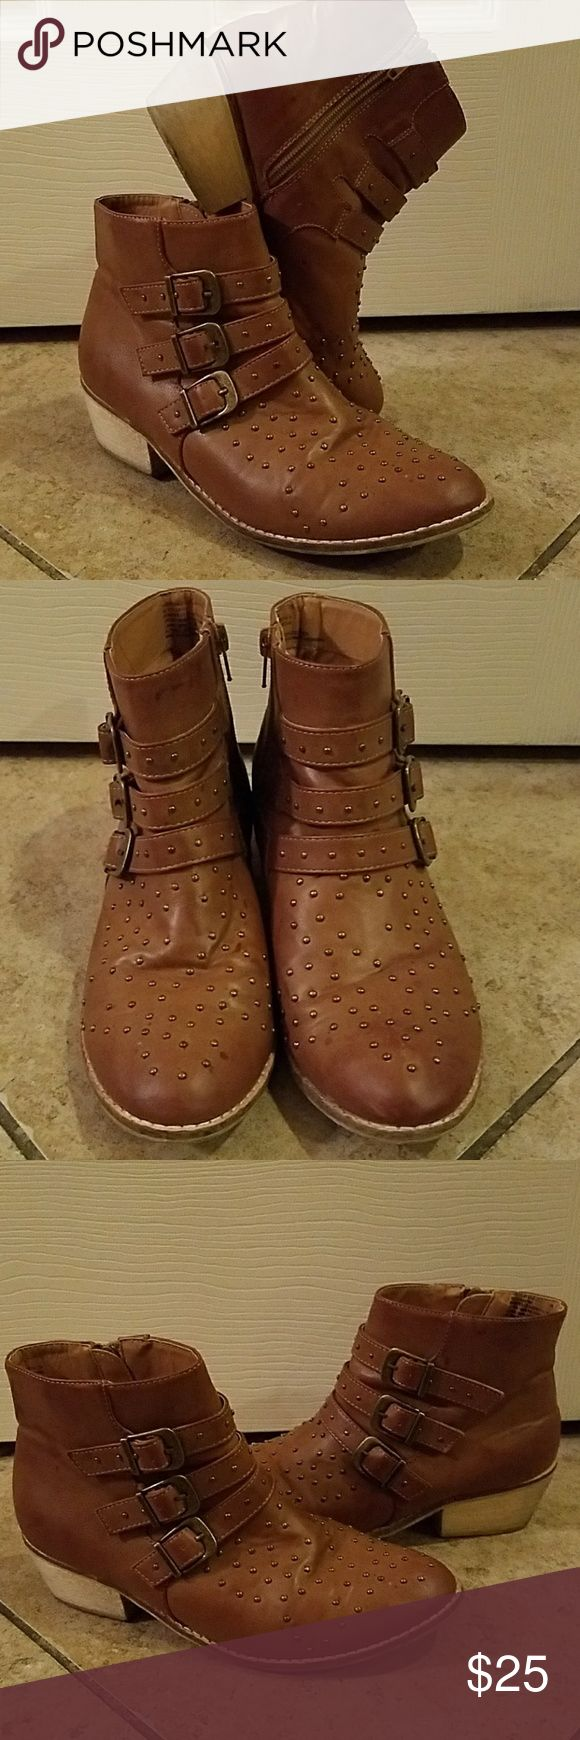 American Eagle Outfitters Studded Ankle Boots AE Outfitters Studded Ankle Boots with zippers. Size 7, in very good condition. American Eagle Outfitters Shoes Ankle Boots & Booties